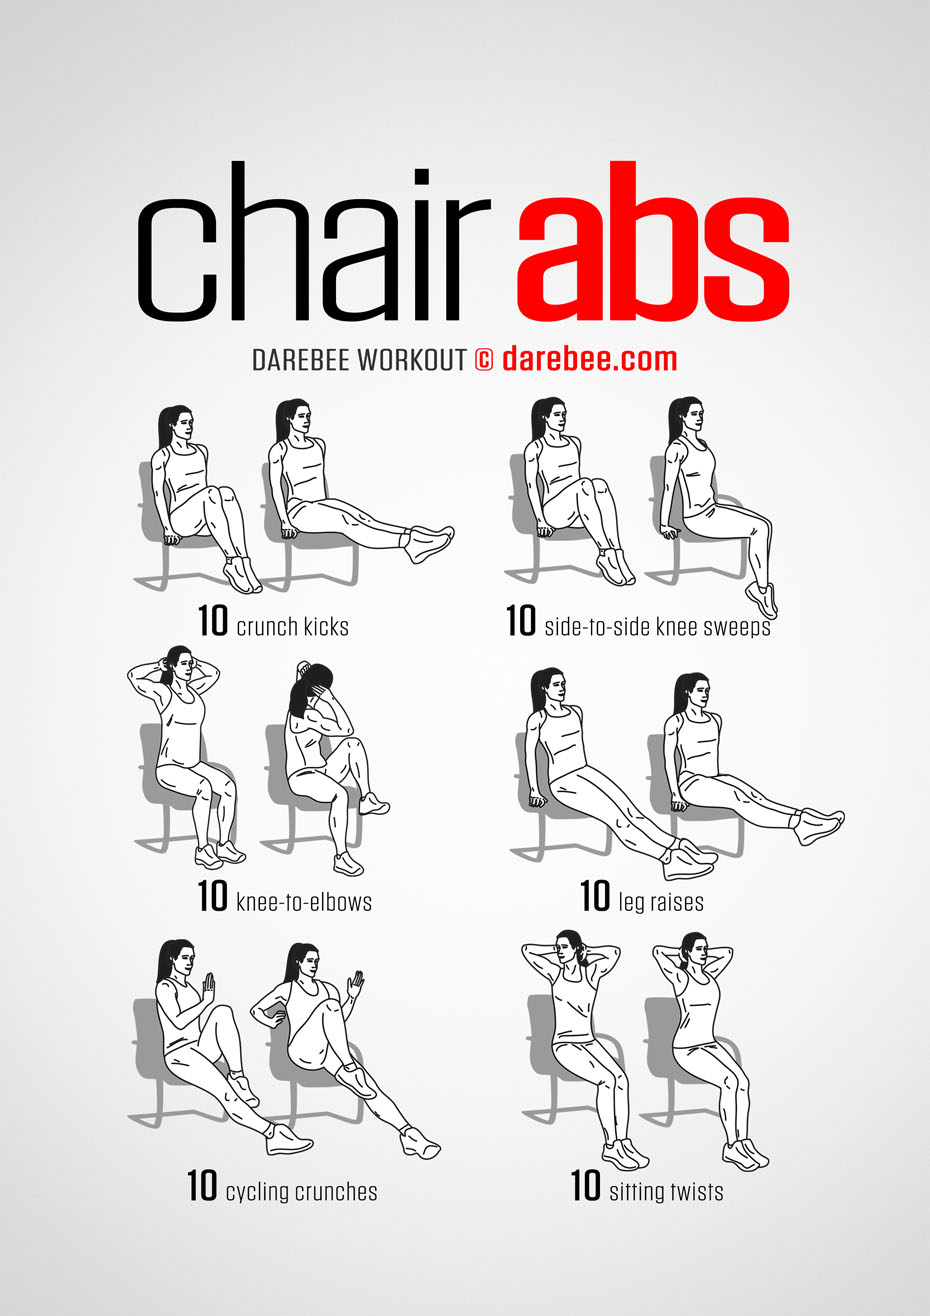 sc 1 st  Darebee & Chair Abs Workout